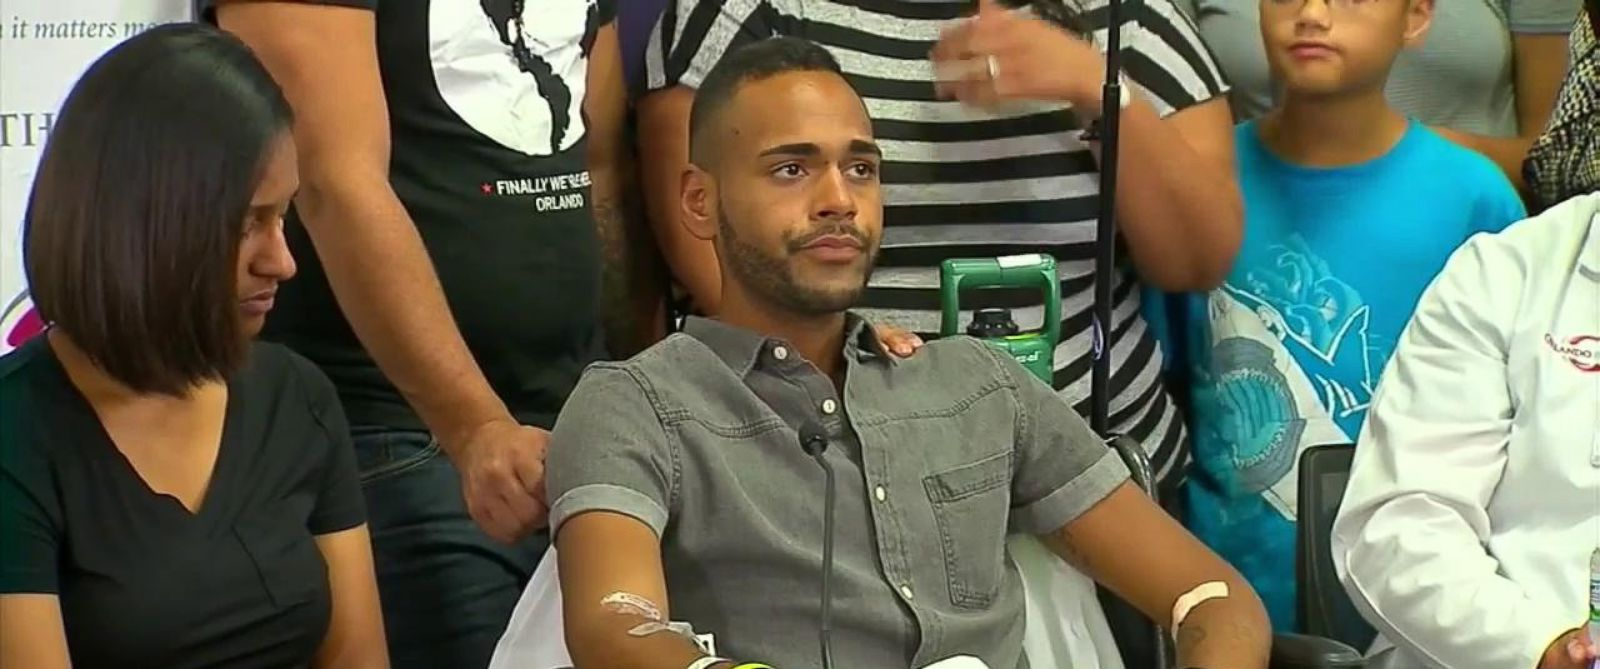 Orlando Shooting Survivor Recalls Horrifying Details From the Night of the Attack